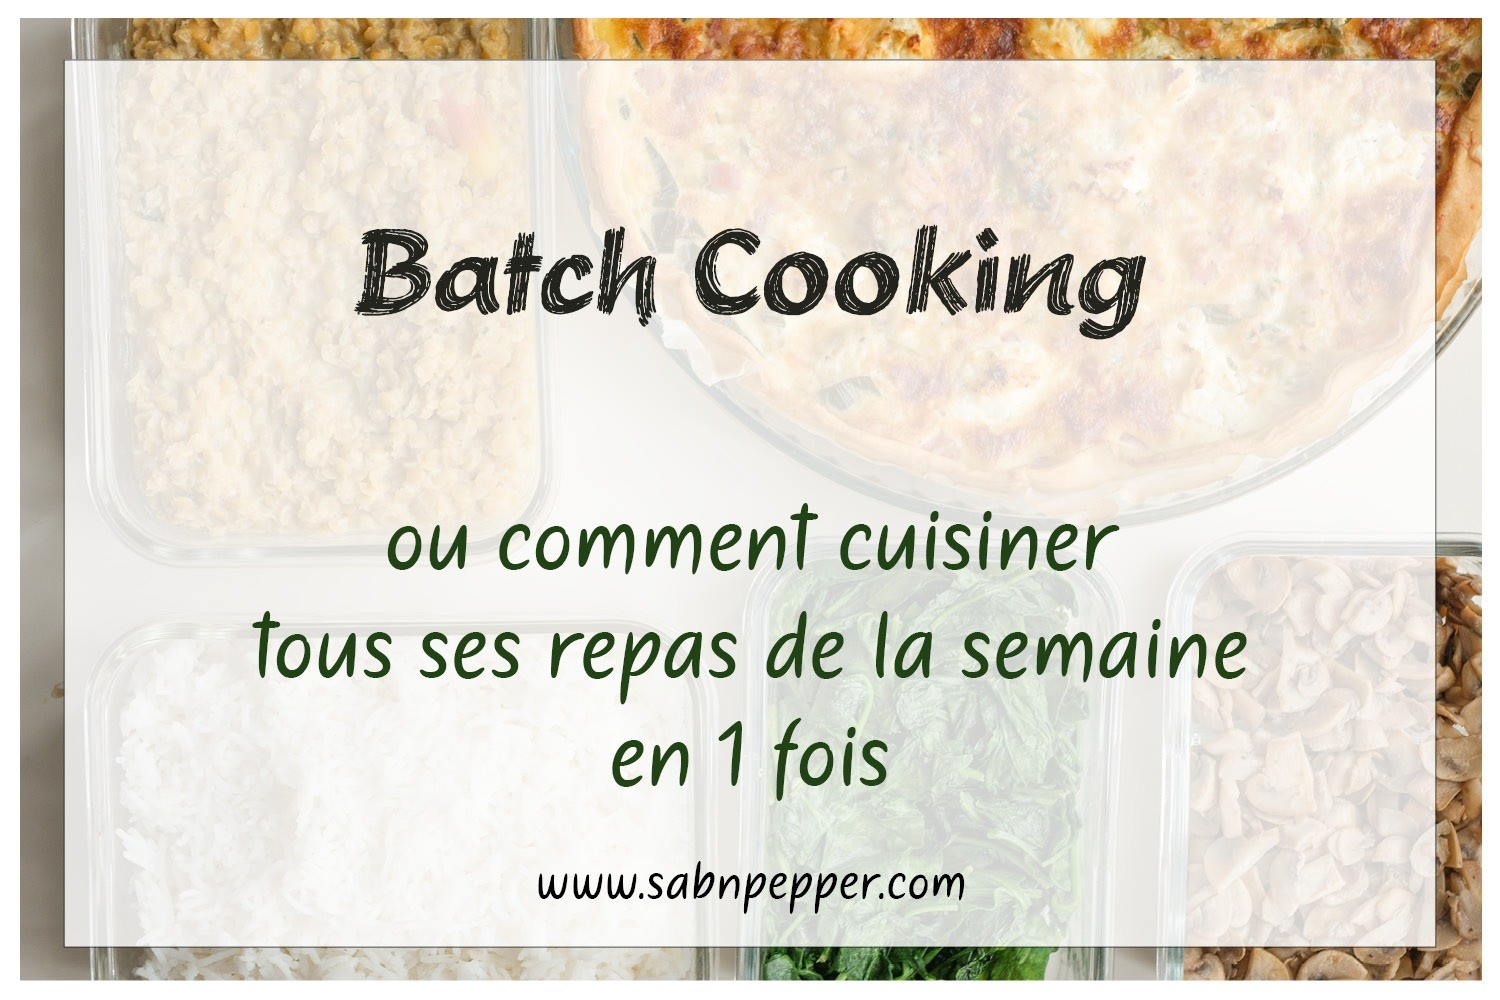 Batch cooking : la méthode qui va révolutionner tes repas #batchcooking